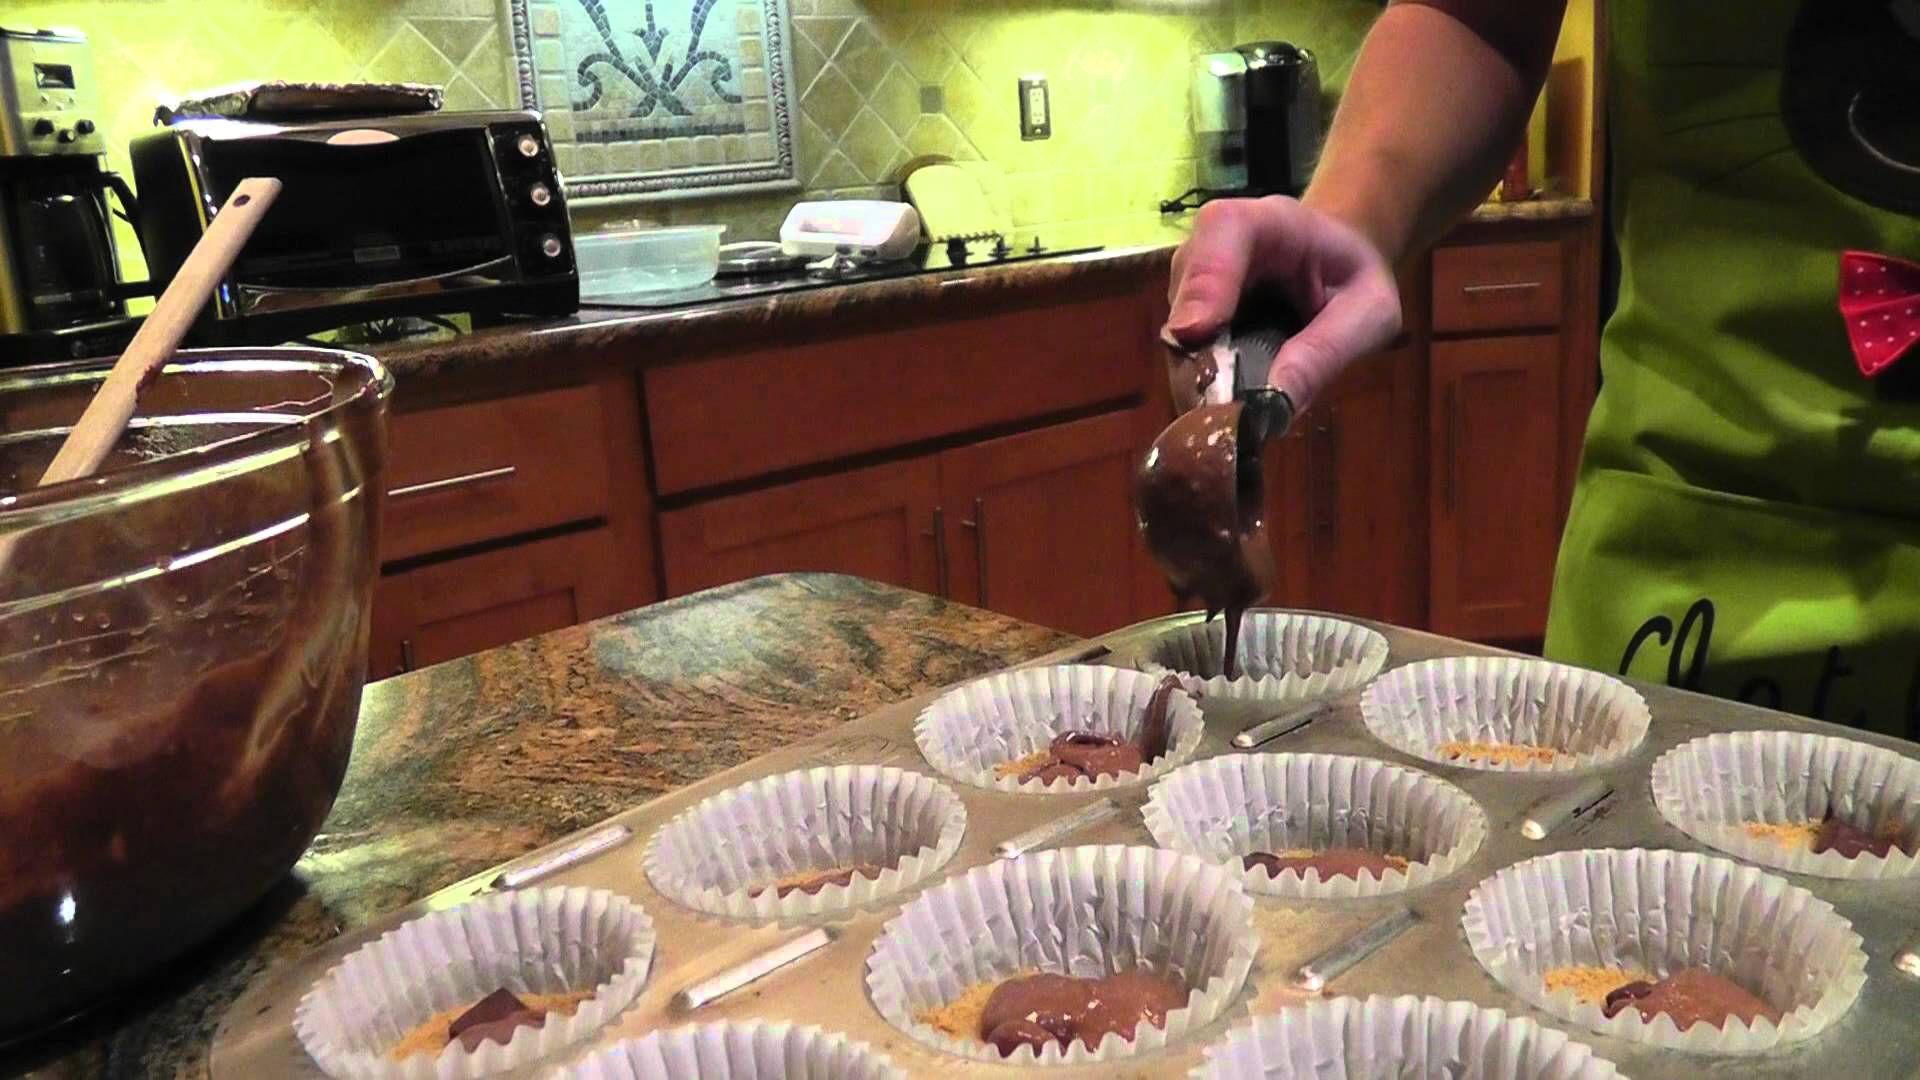 How To Make S More Cupcakes With Images More Cupcakes How To